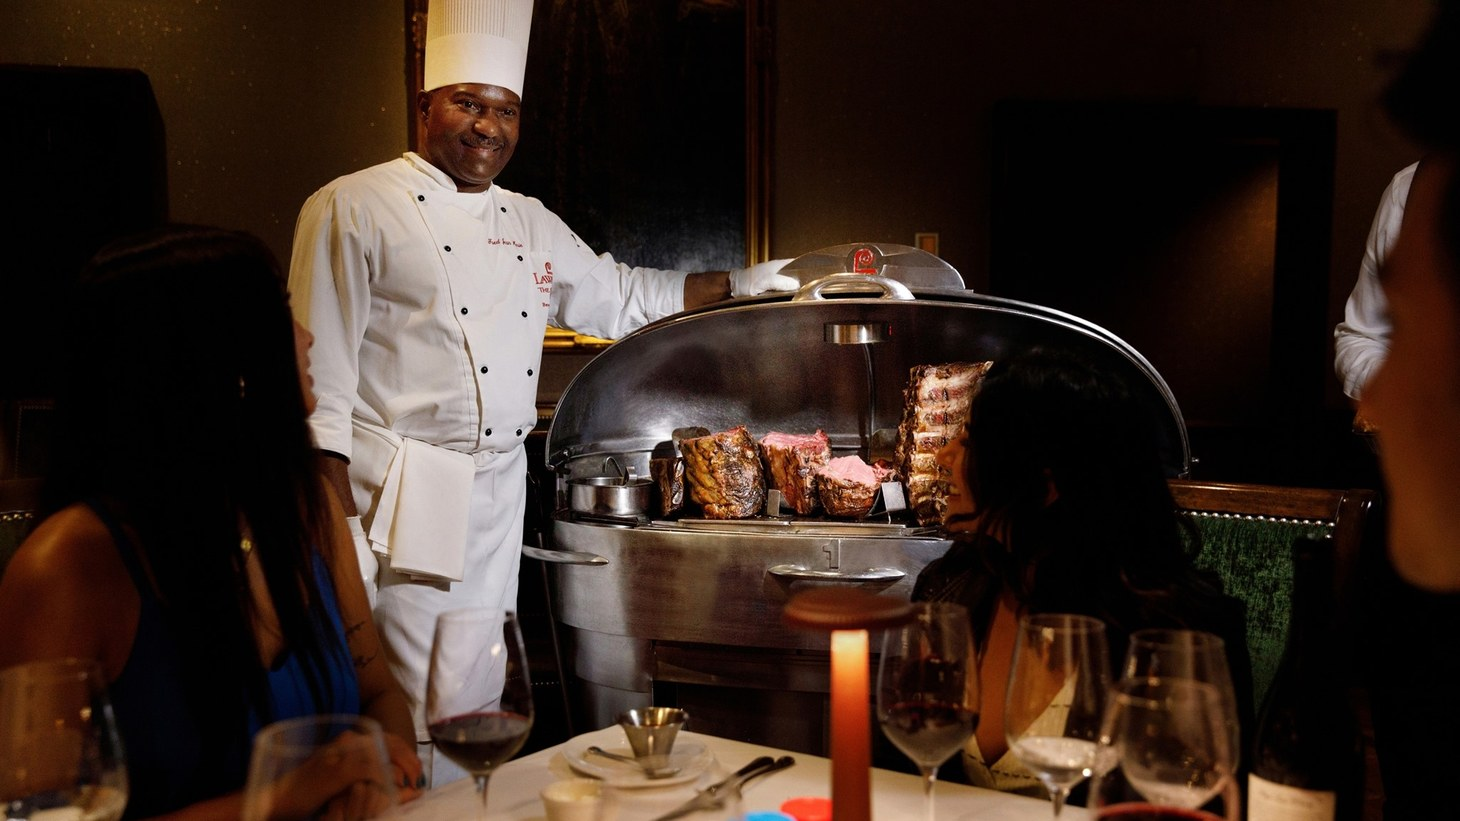 Servers rolling stainless steel carts take six months to a year to earn a medal, signifying the completion of training to cut the perfect slice of prime rib at Lawry's.